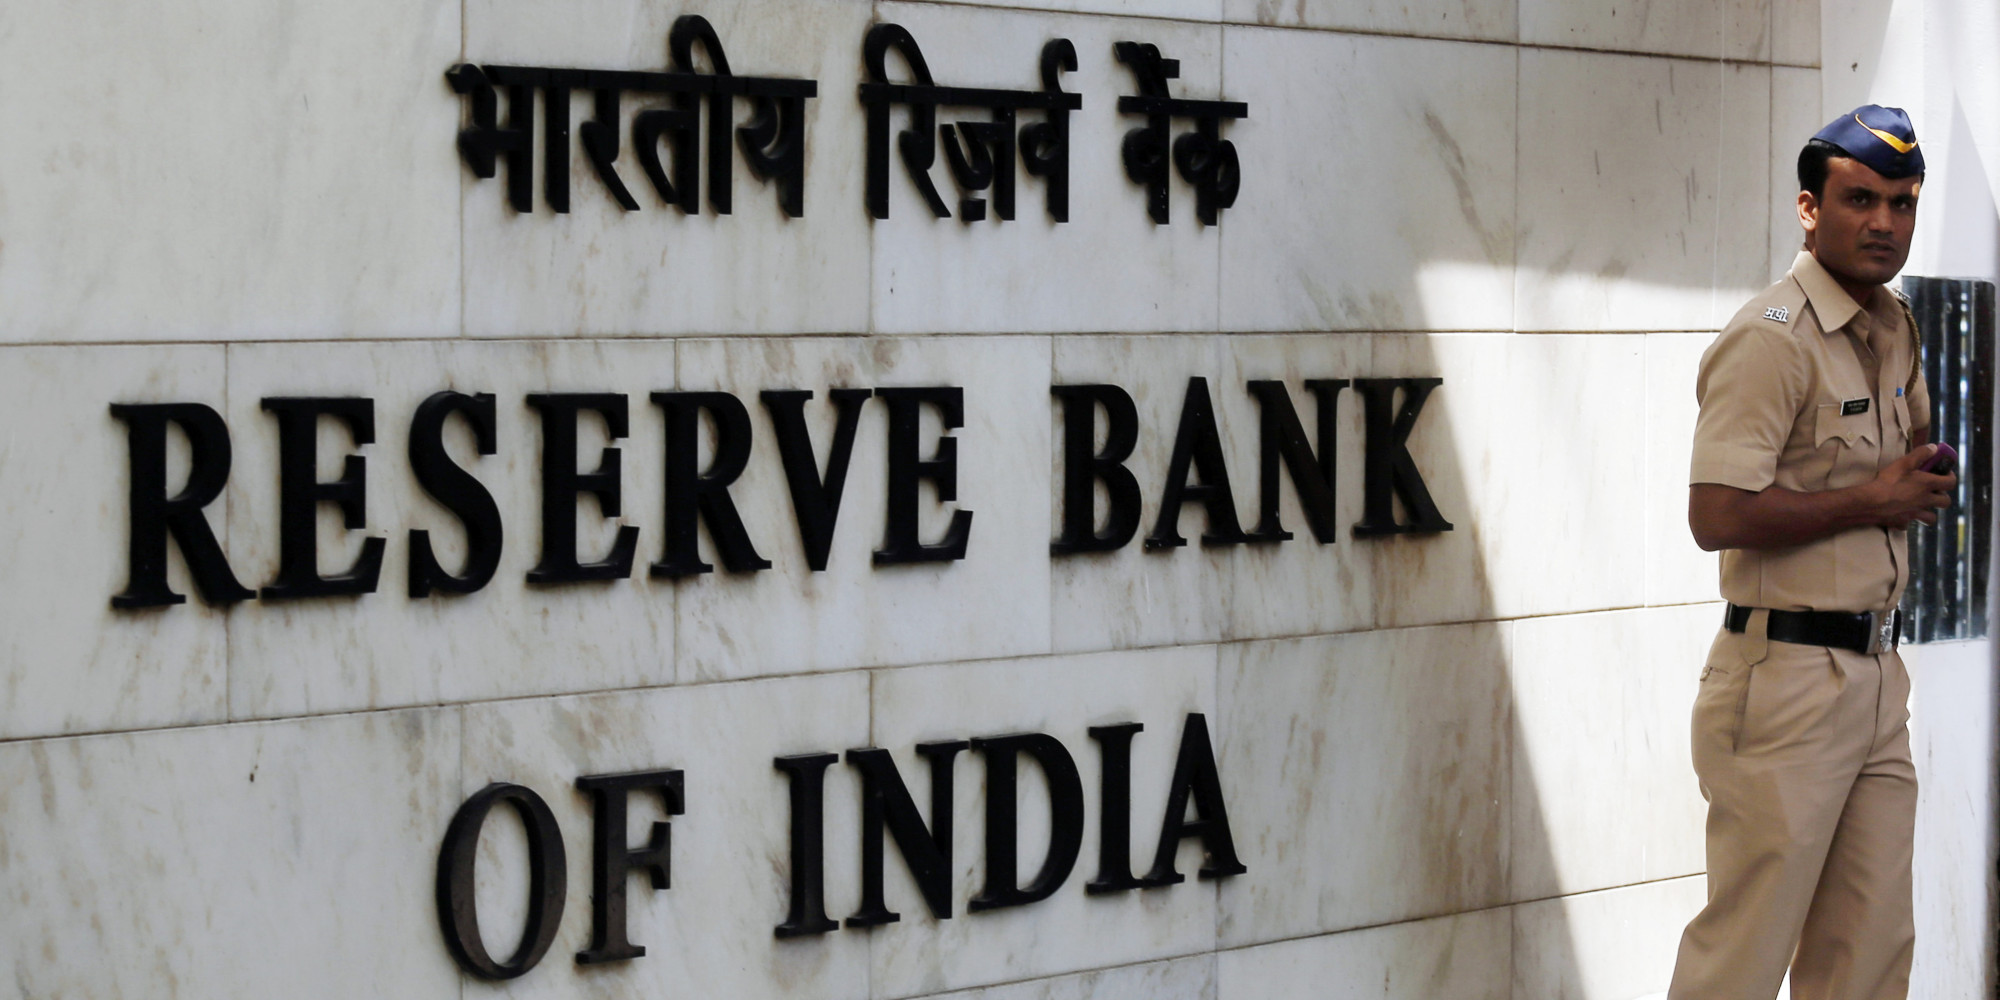 reserve bank of india owner name